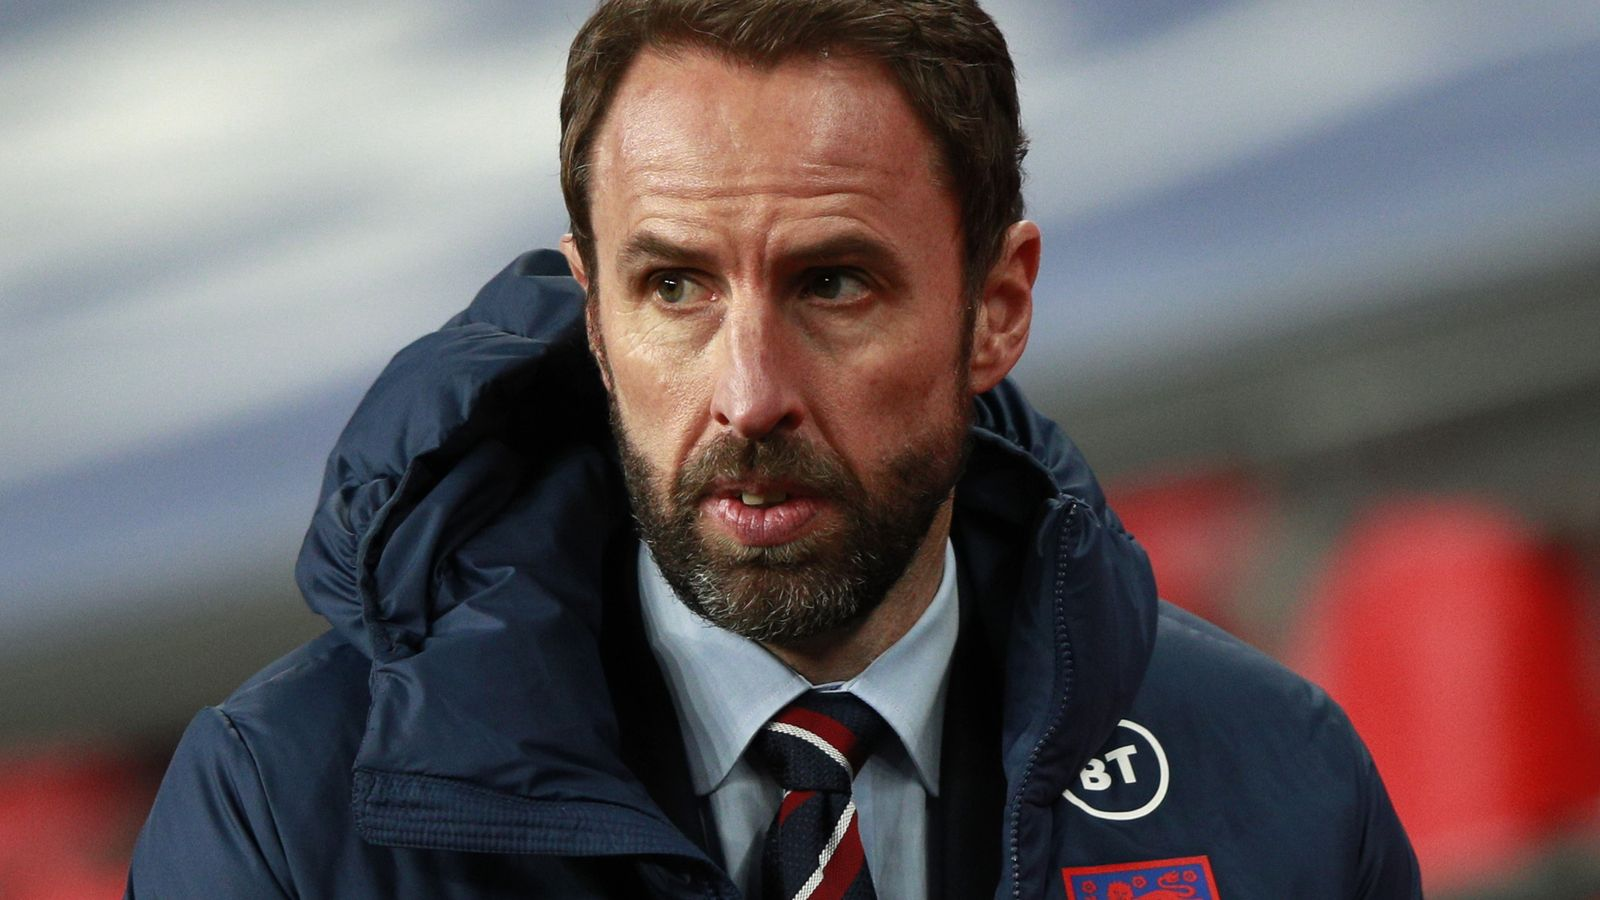 Gareth Southgate to delay final decision over England squad for Euro 2020 |  Football News | Sky Sports